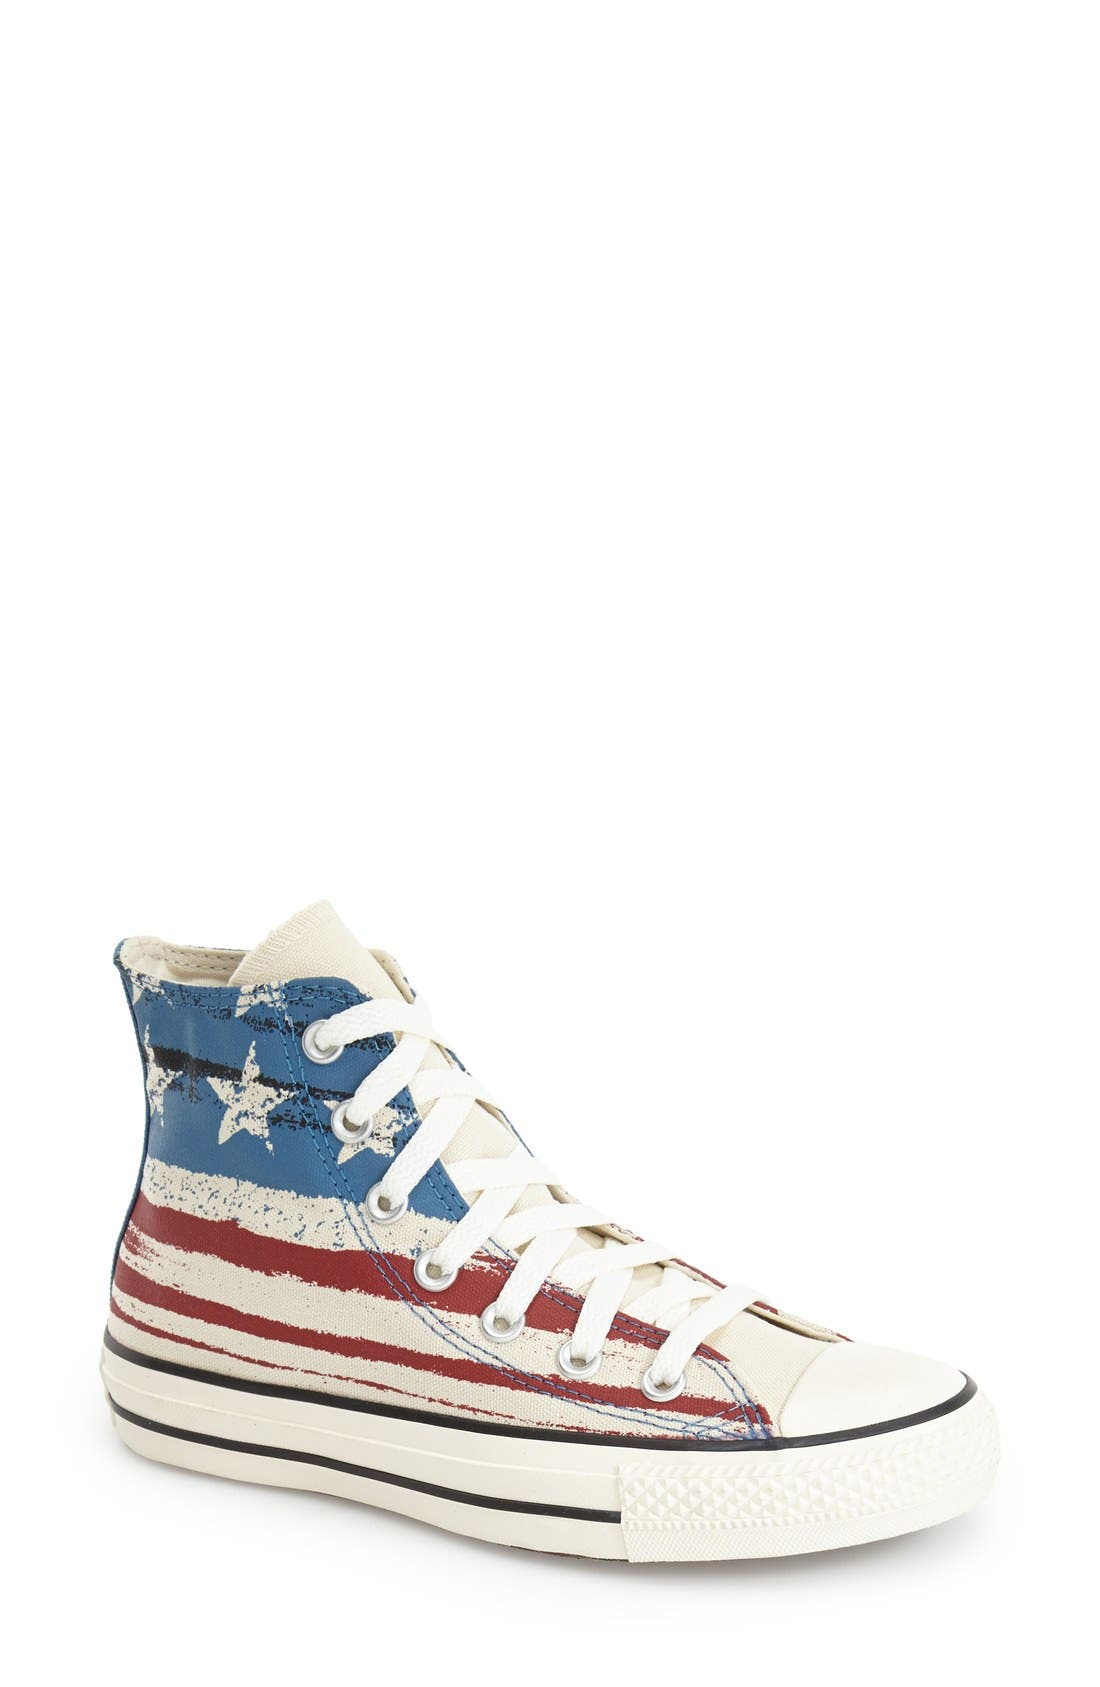 Main Image - Converse Chuck Taylor® Flag Print High Top Sneaker (Women)